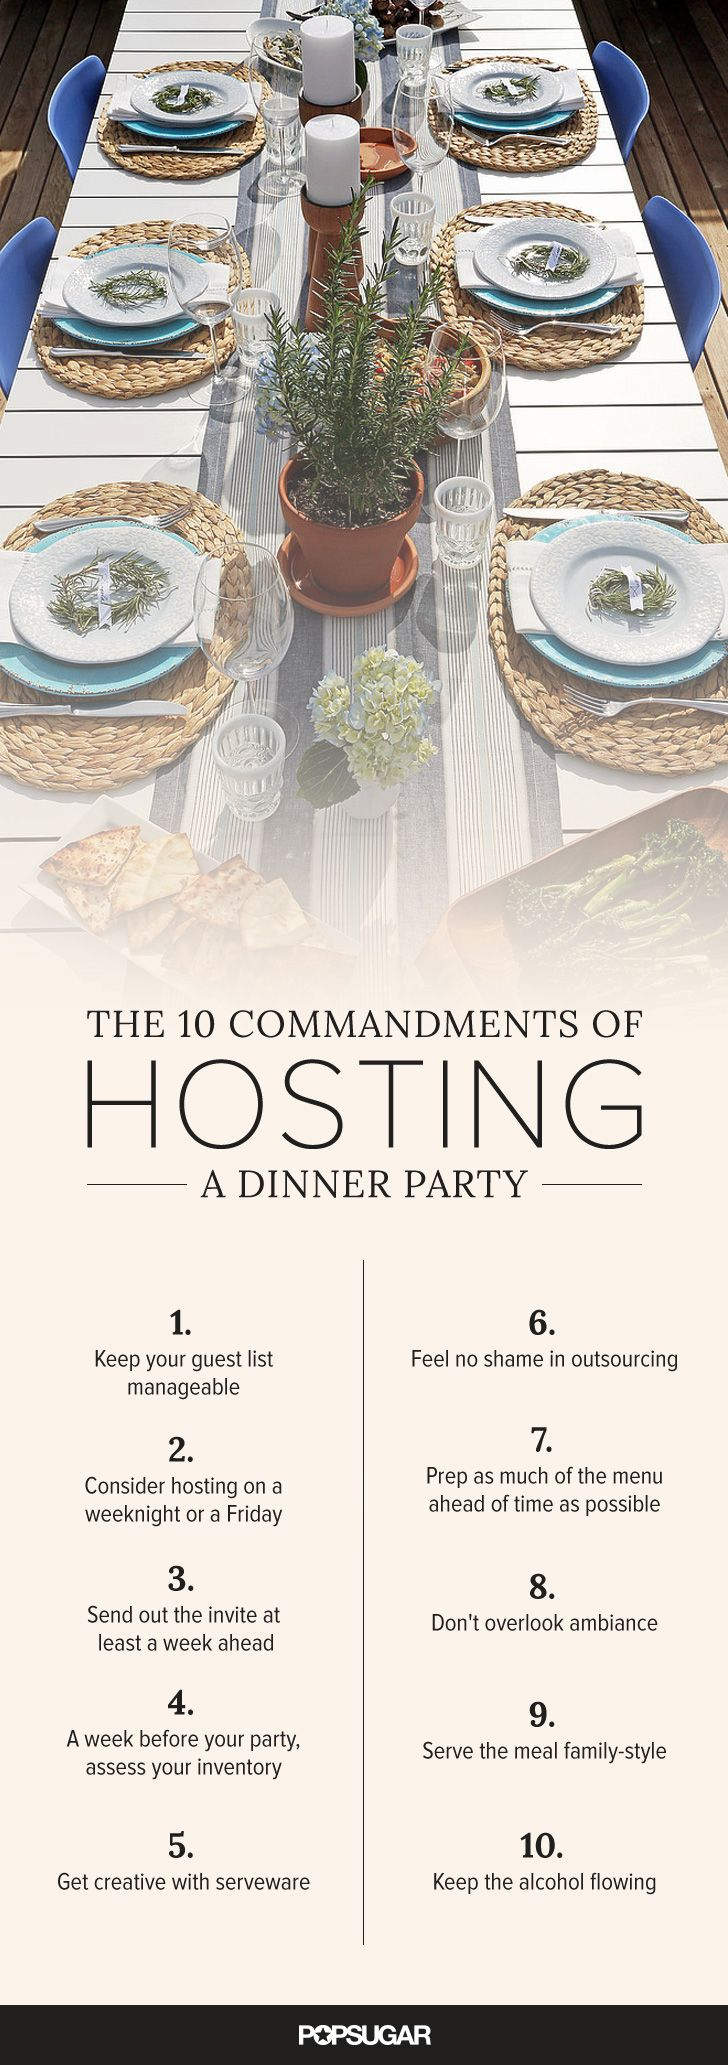 Hosting your first dinner party is a major milestone; sure, you've had friends over for cocktails or thrown a raucous house party, but those are different beasts altogether. A dinner party might seem imposing at the outset, but really it shouldn't be; follow these 10 commandments and you'll pull it off no problem.